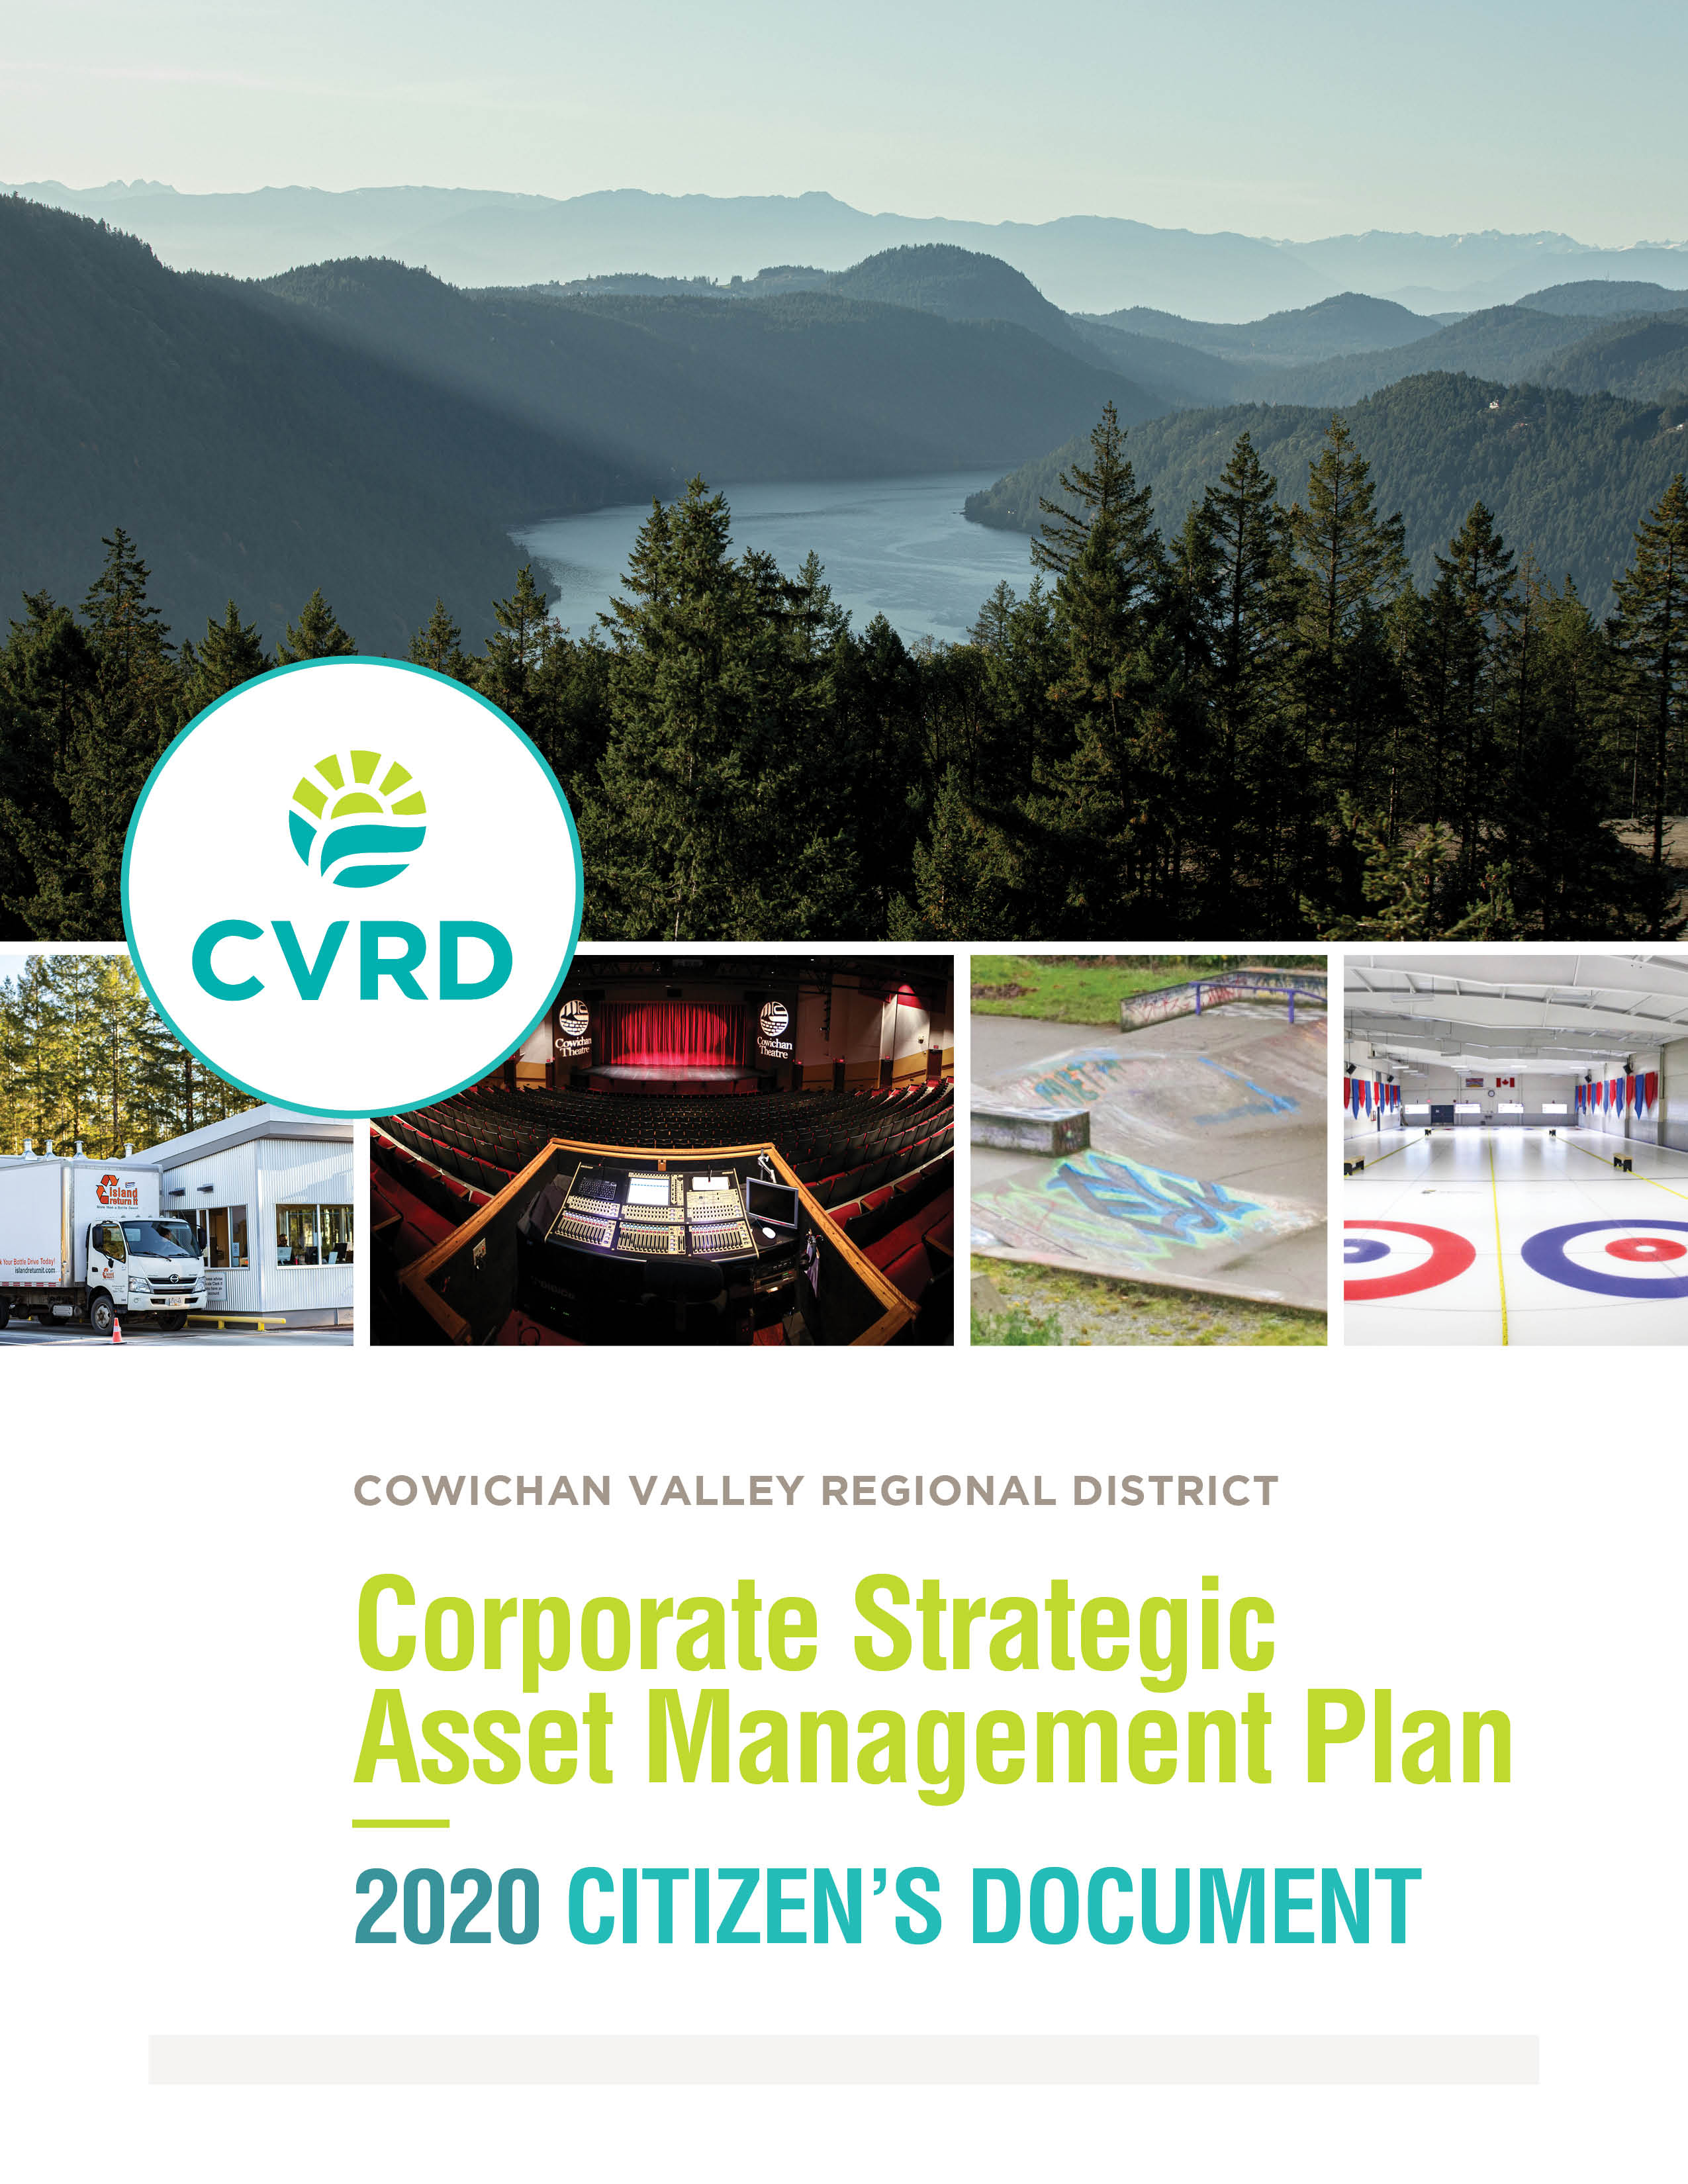 2020-01-06_CVRD Citizens Document page 1